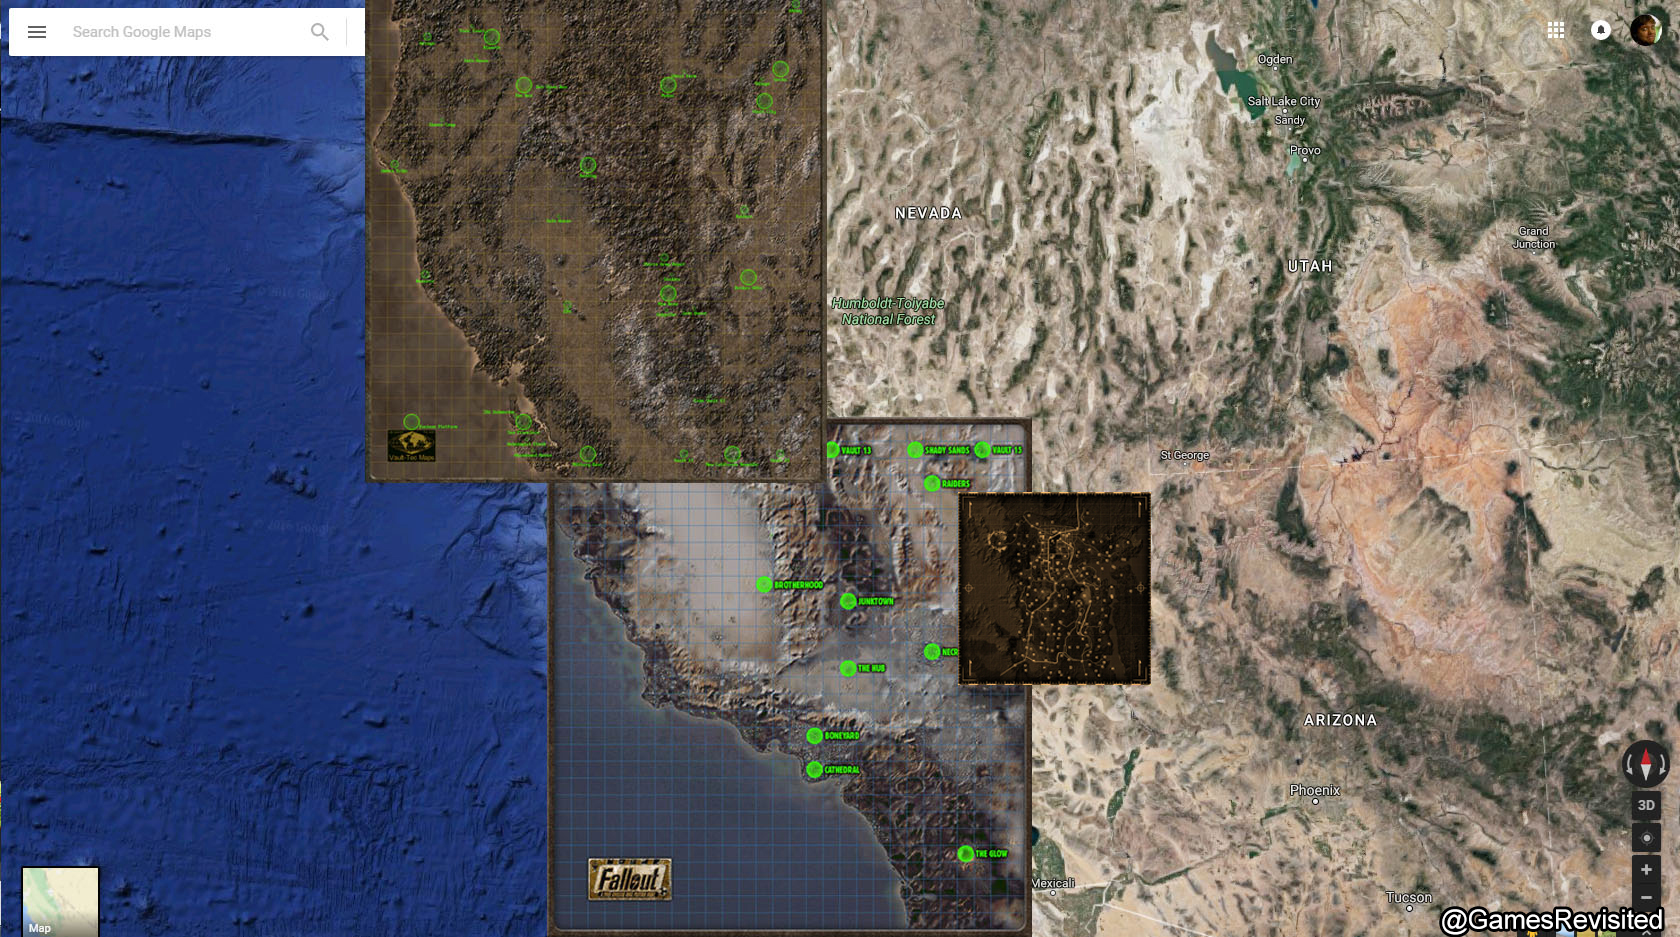 Fallout Las Vegas Map.Fallout Maps Overlayed Games Revisited